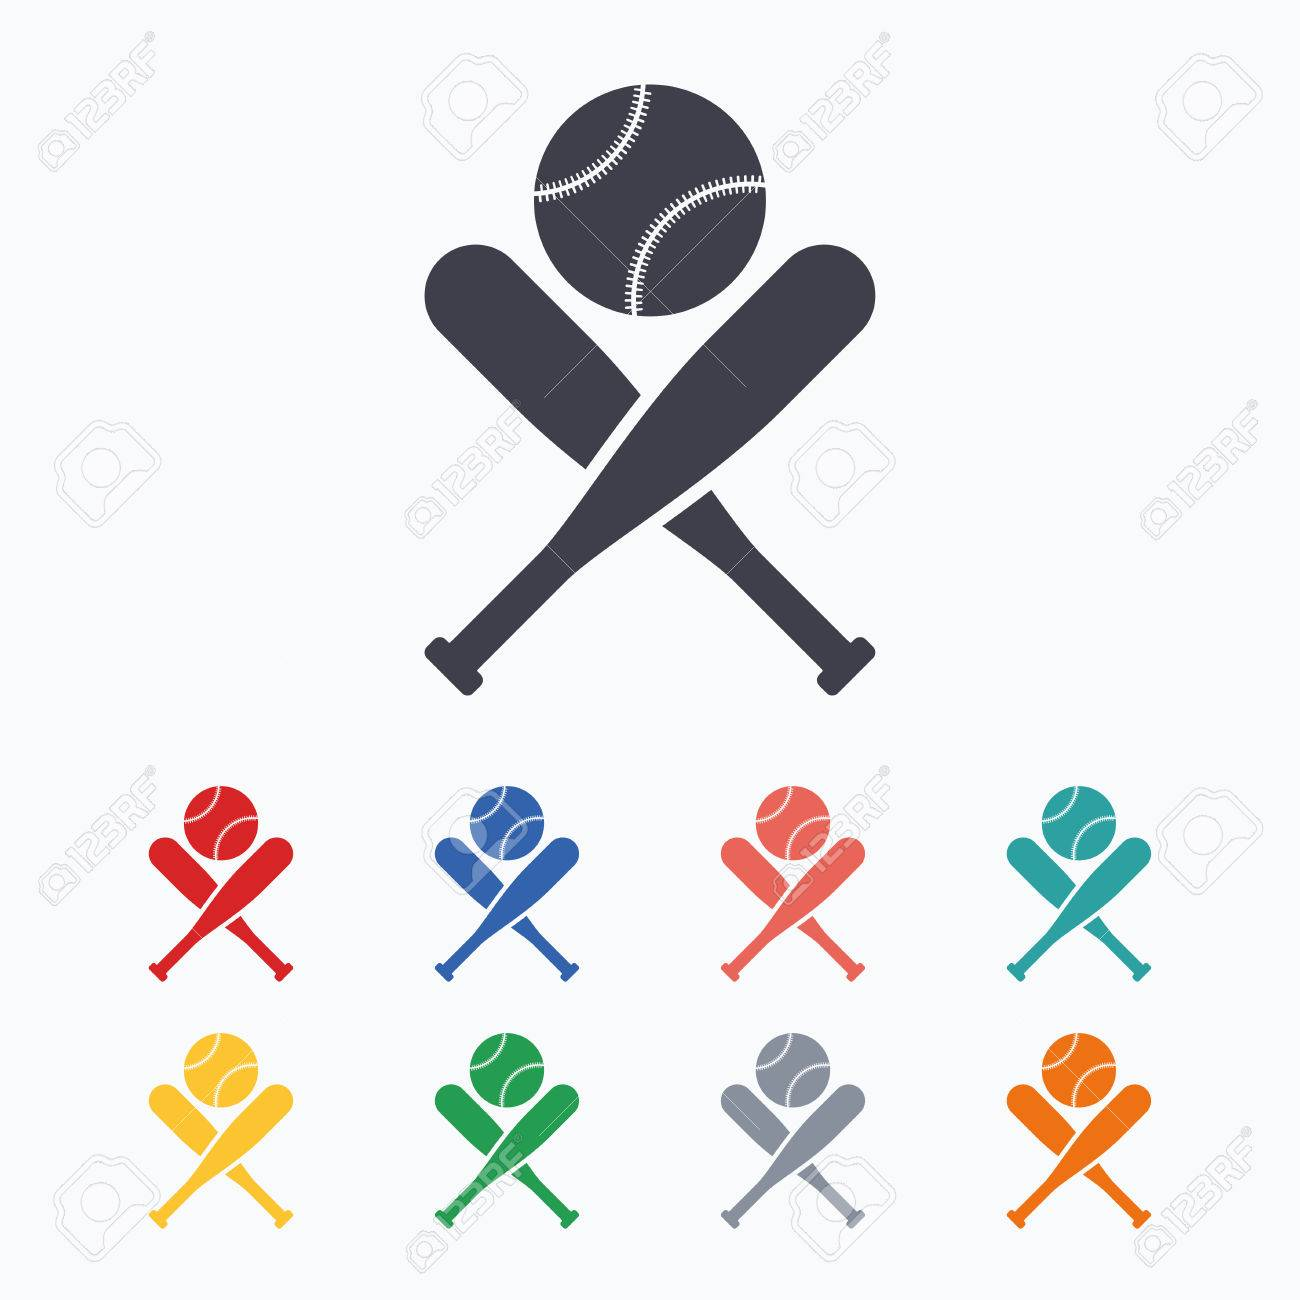 22a7105afac87 Baseball bats and ball sign icon. Sport hit equipment symbol. Colored flat  icons on